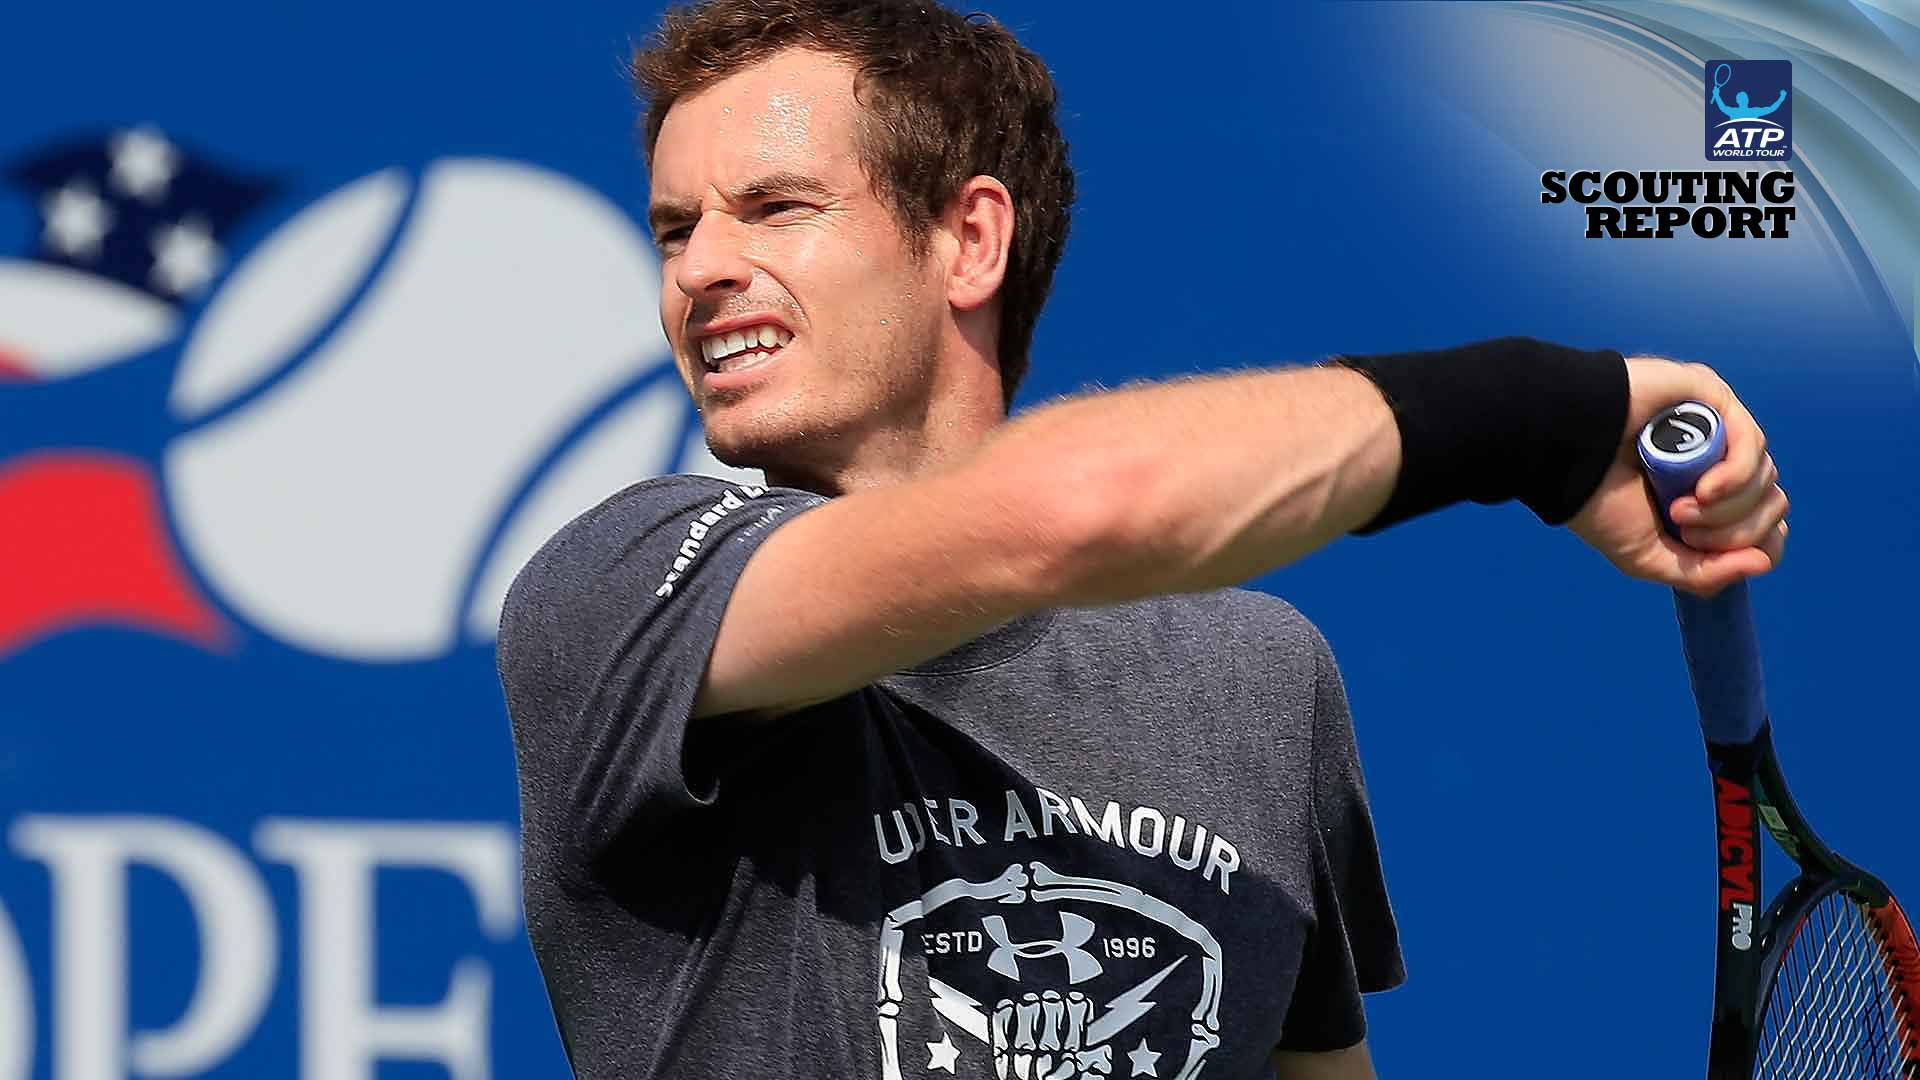 Andy Murray will attempt to win a second US Open title.